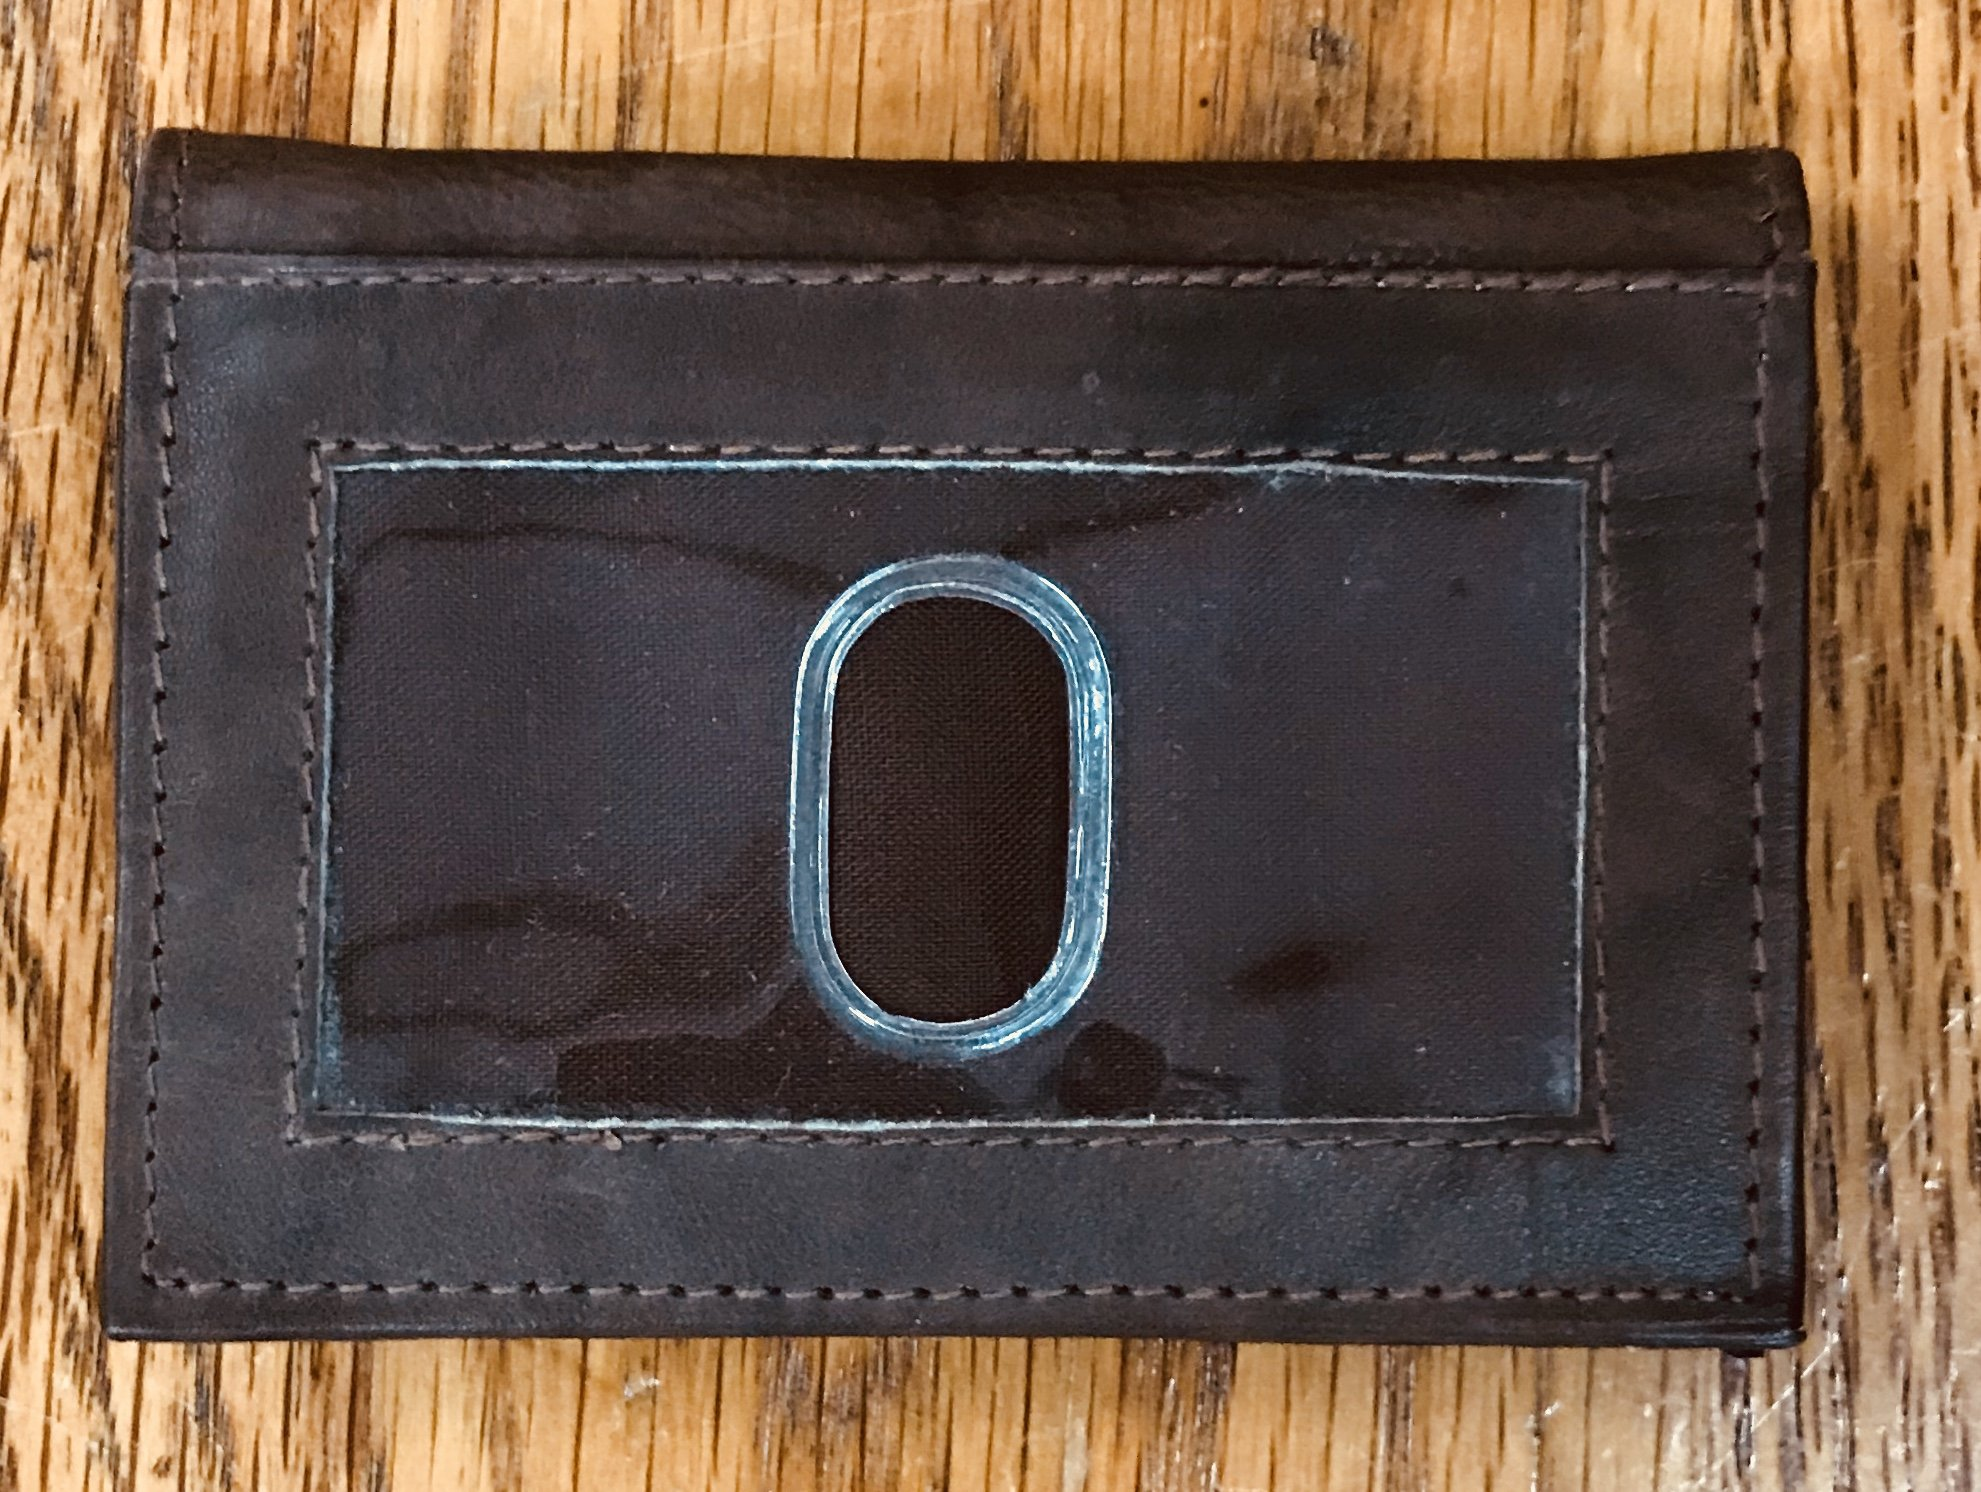 Davis Bros. ID/card holder